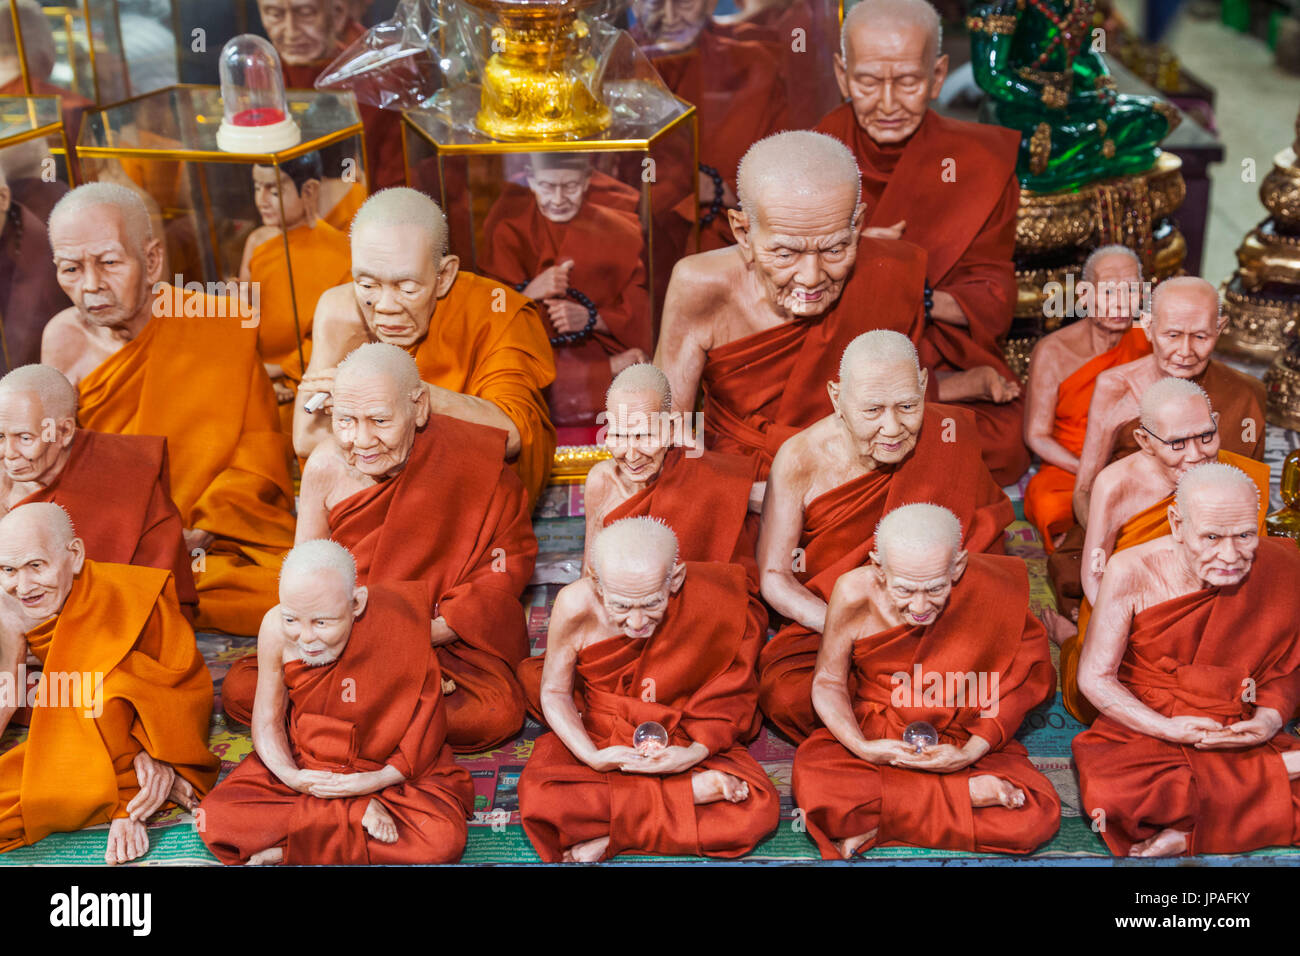 Thailand, Bangkok, Antique Market display of Lifelike Models of Deceased Temple Abbots - Stock Image